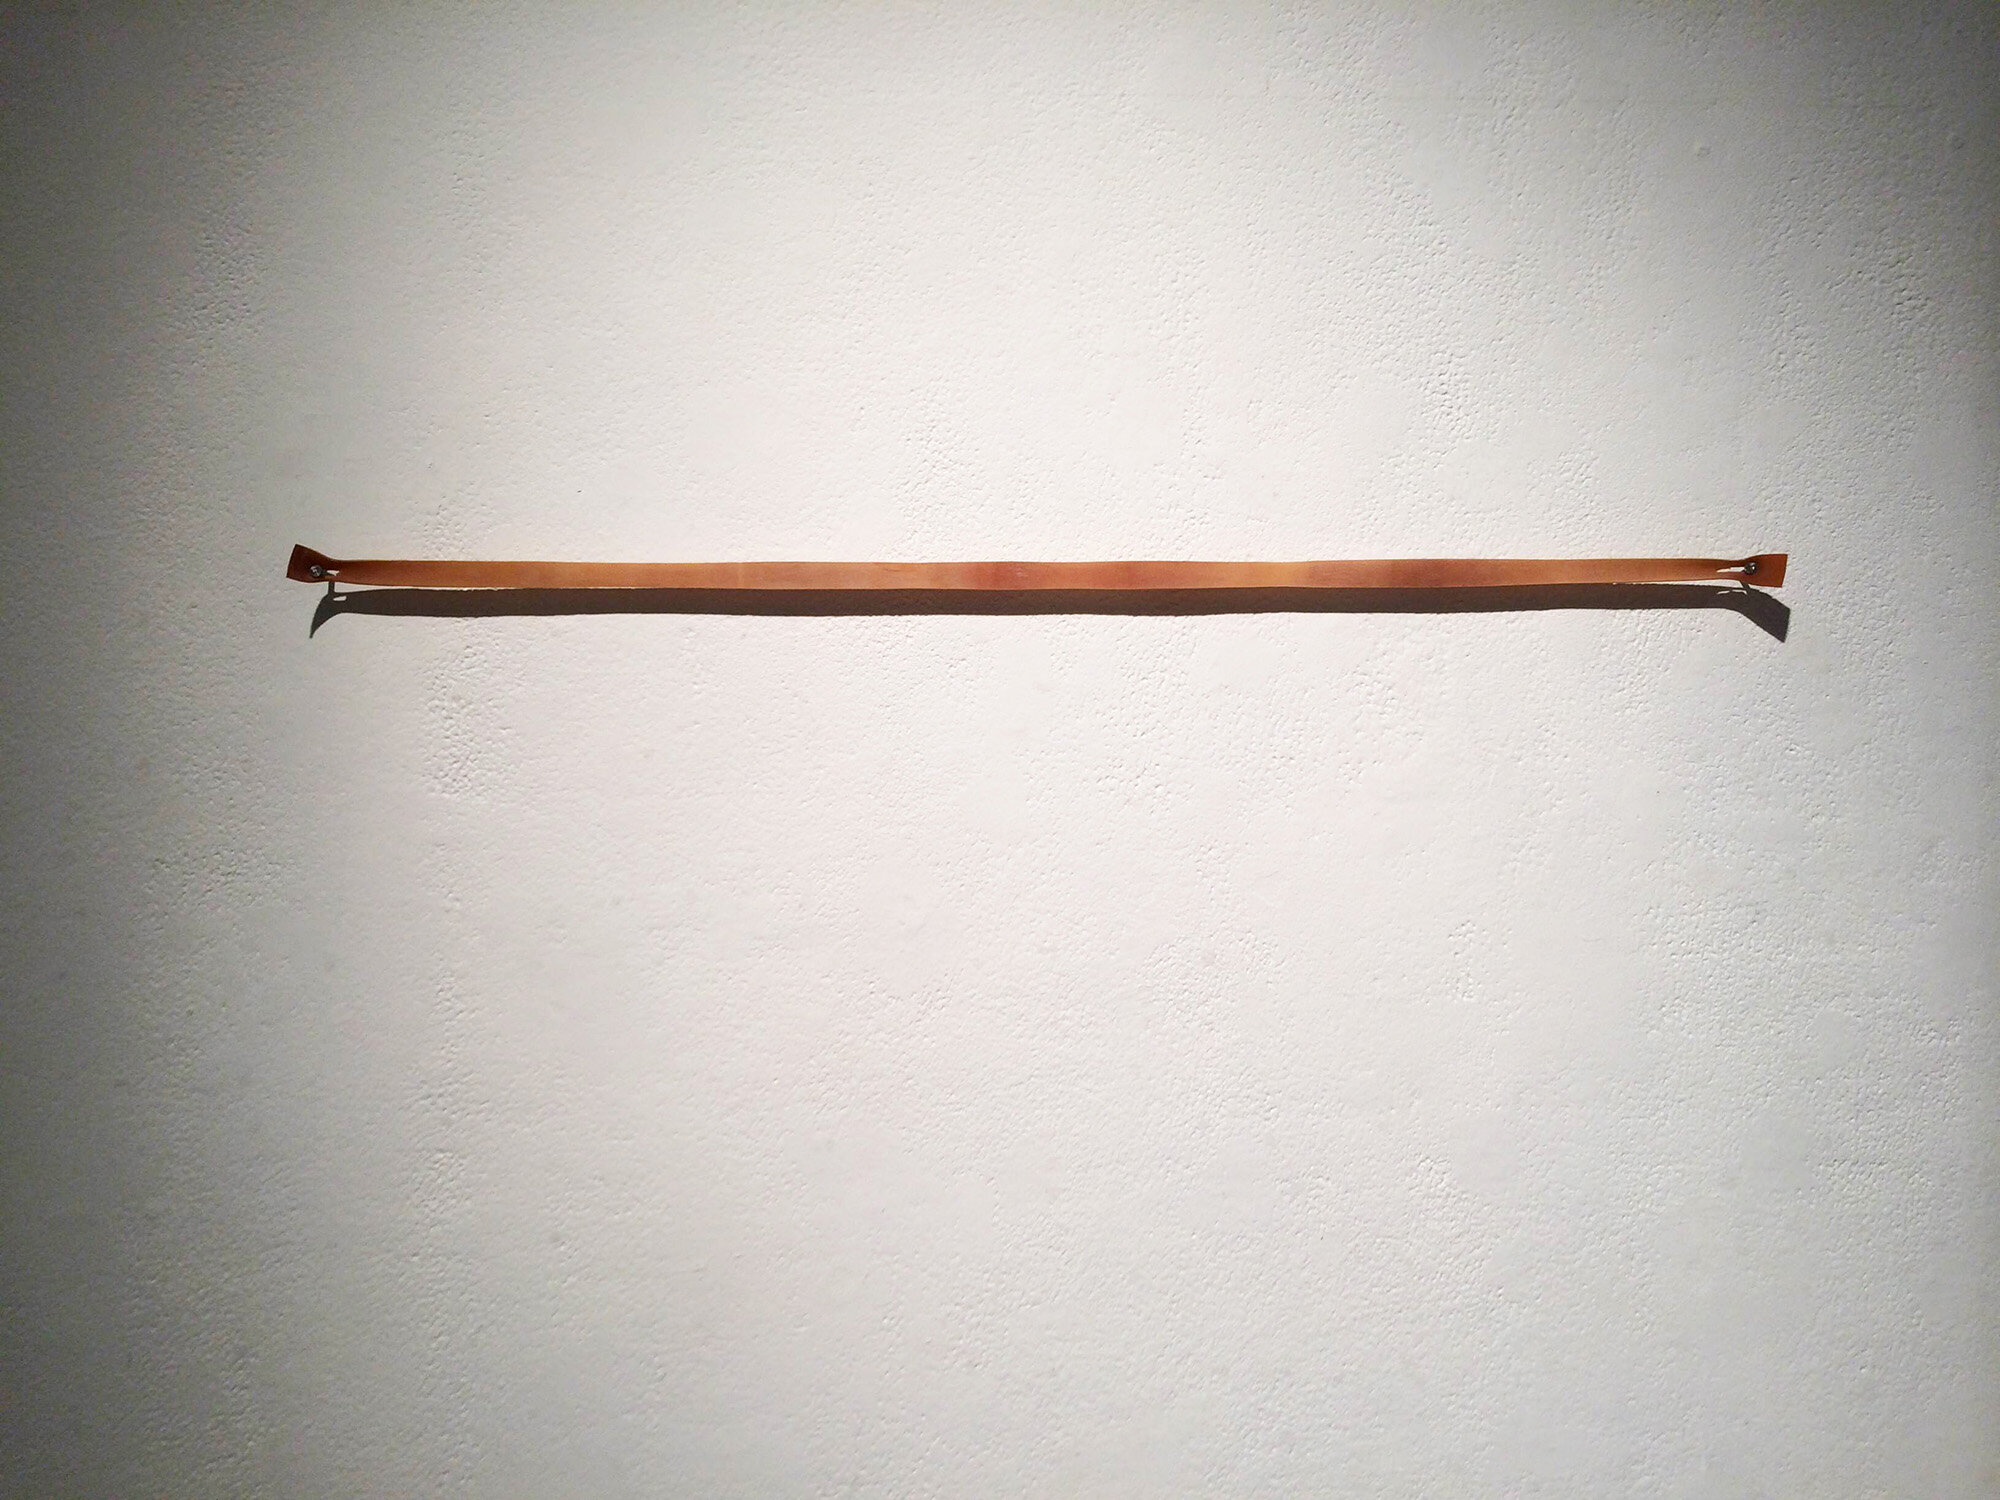 Broken Band , 2014, rubber band, 1 x 30 inches.